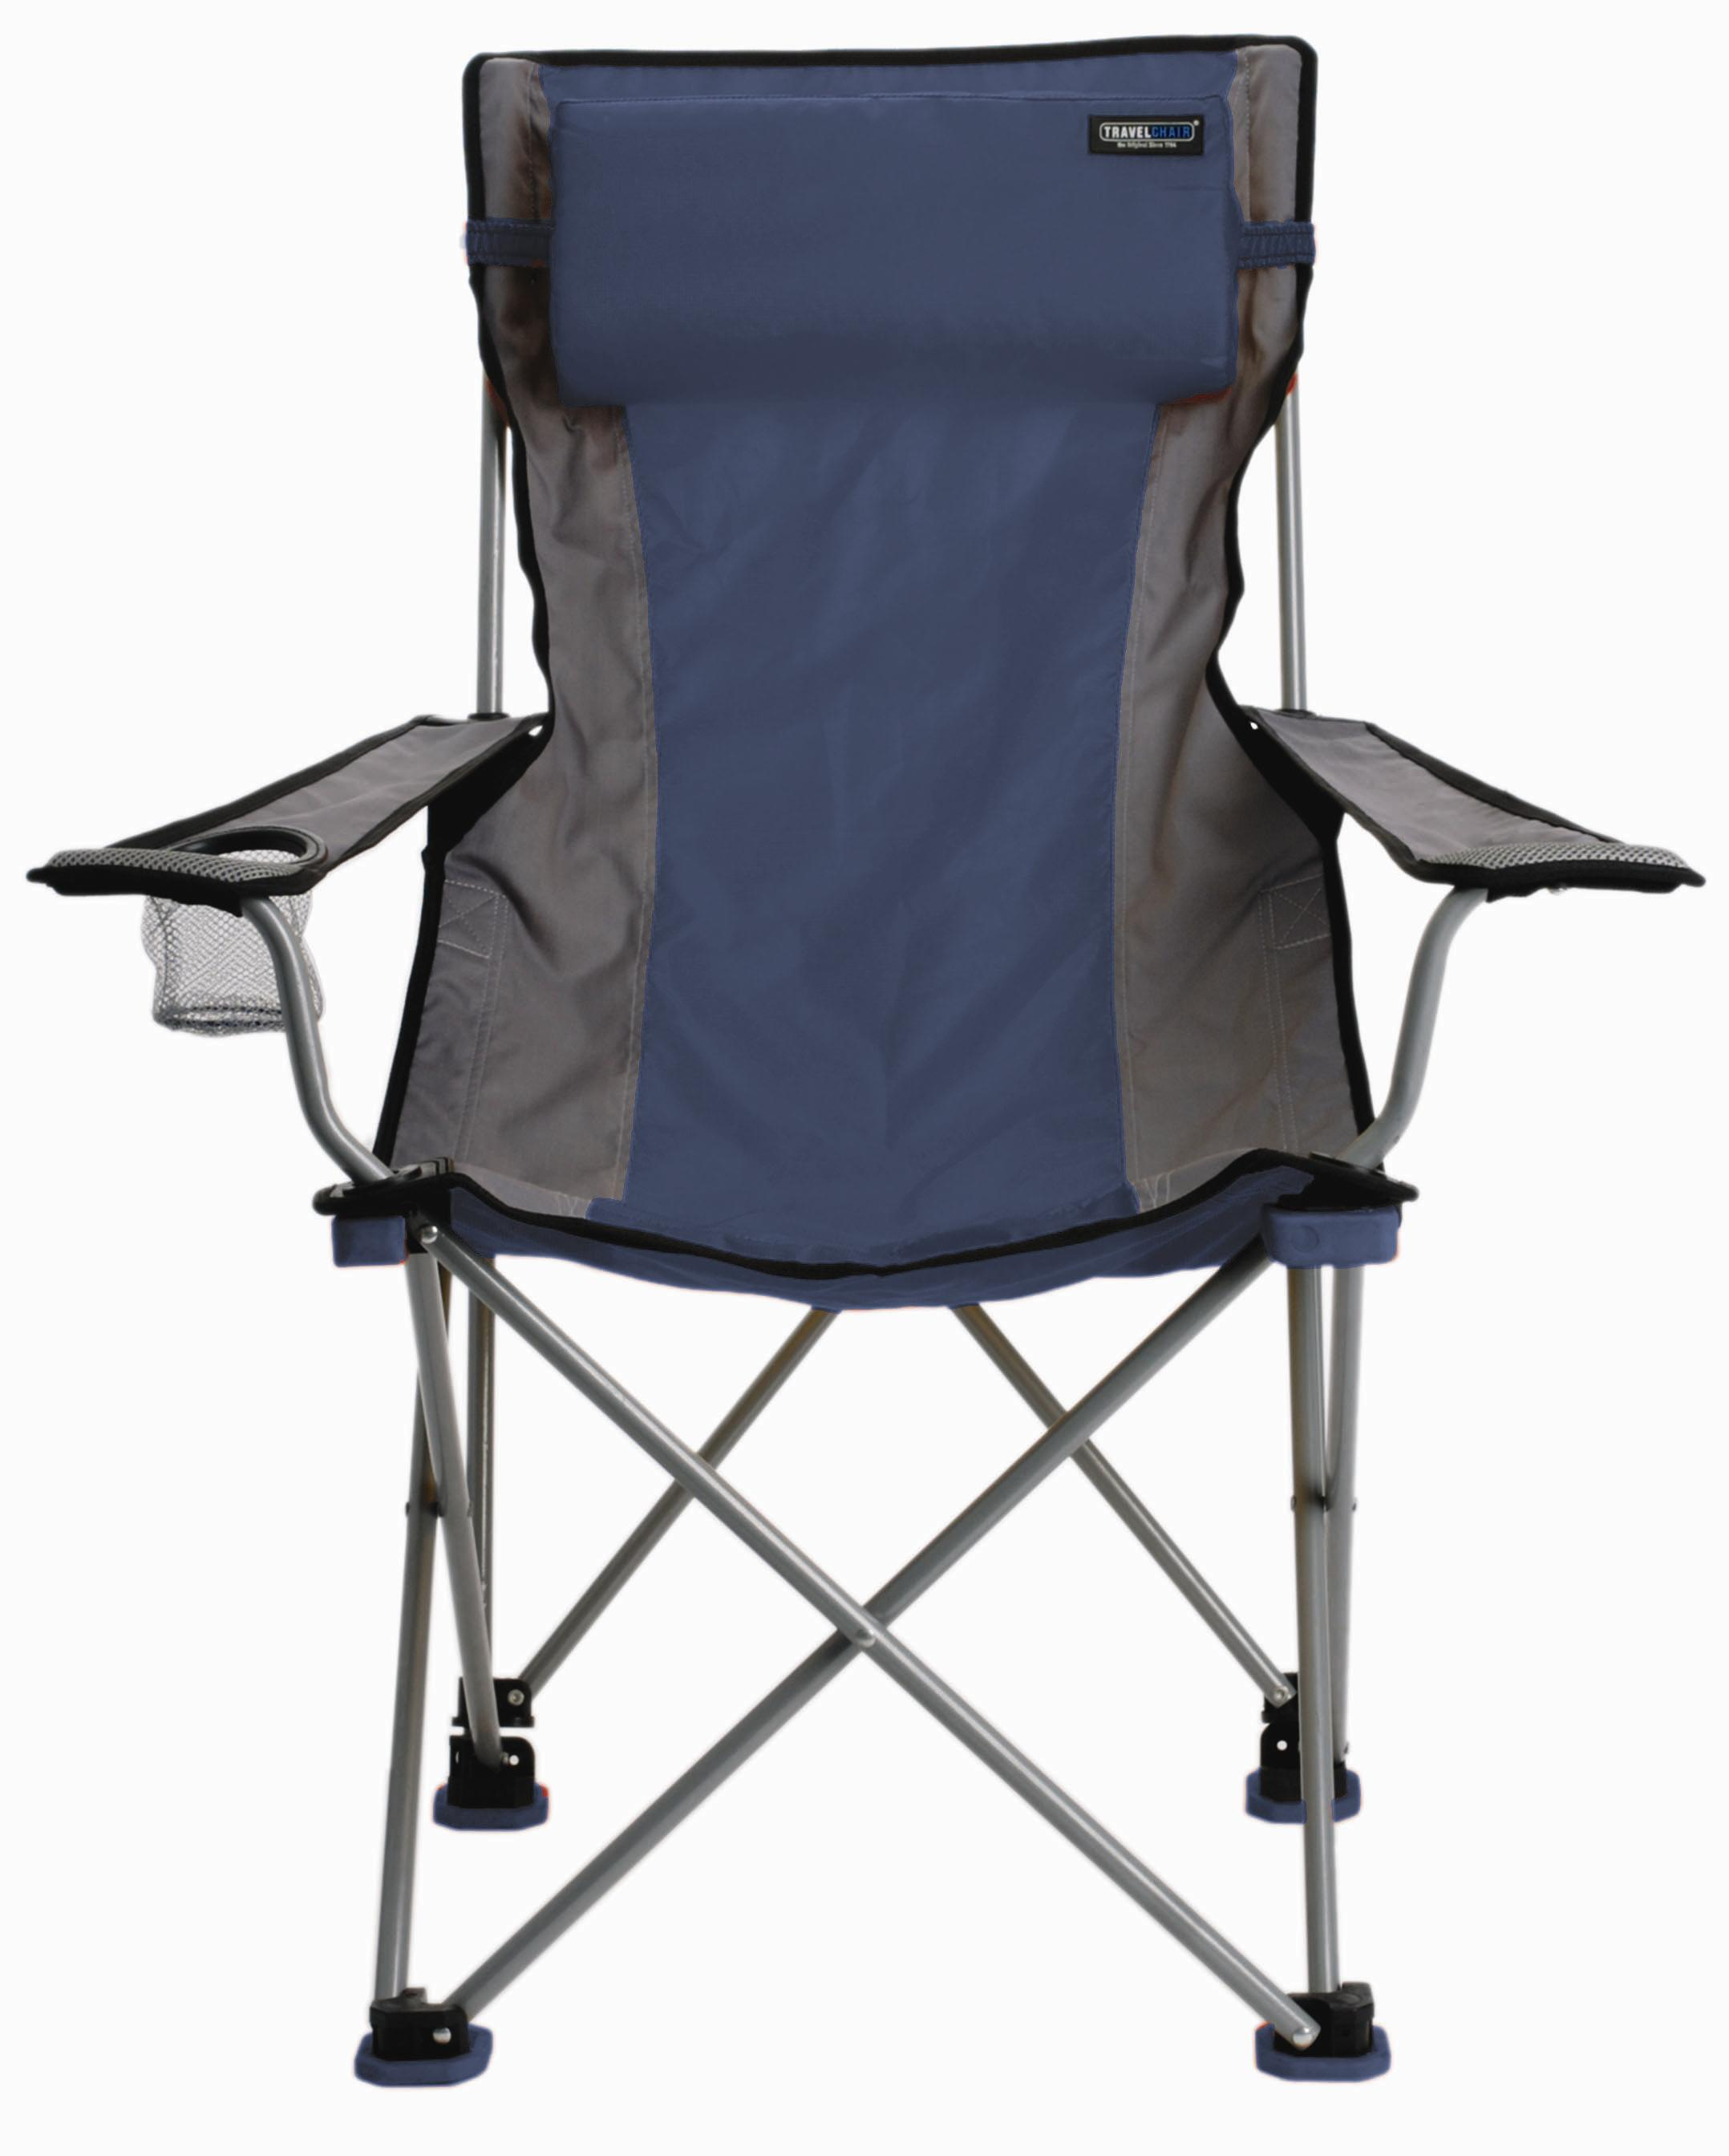 Travel Chair Bubba Outdoor Chair Blue